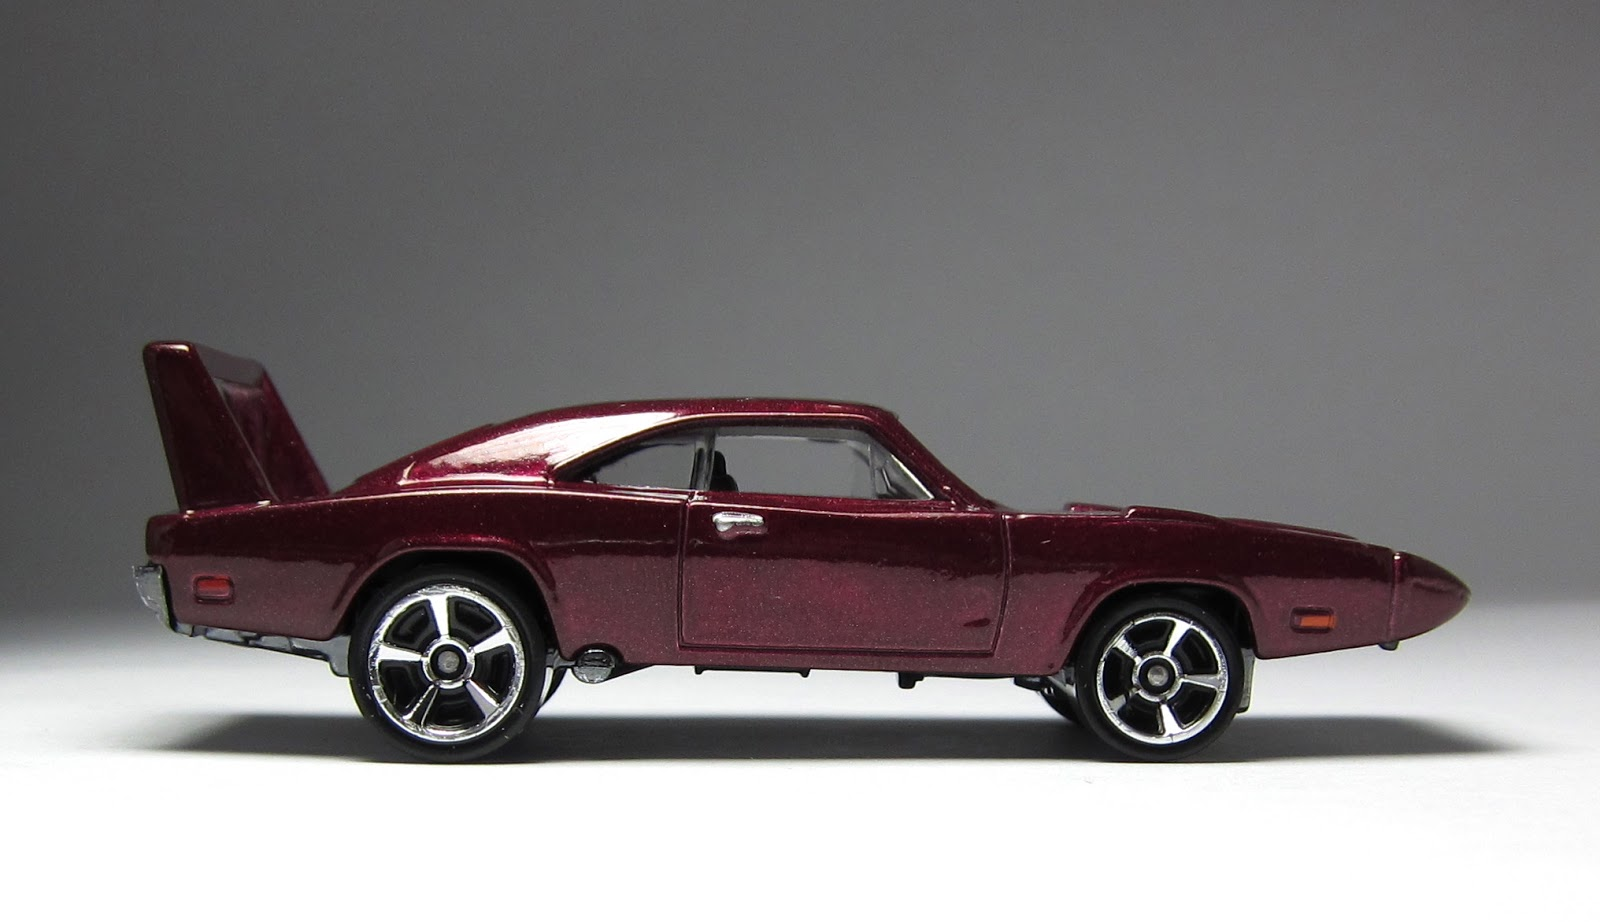 1969 charger daytona ultimate hot wheels - Dodge Charger 1969 Fast And Furious 6